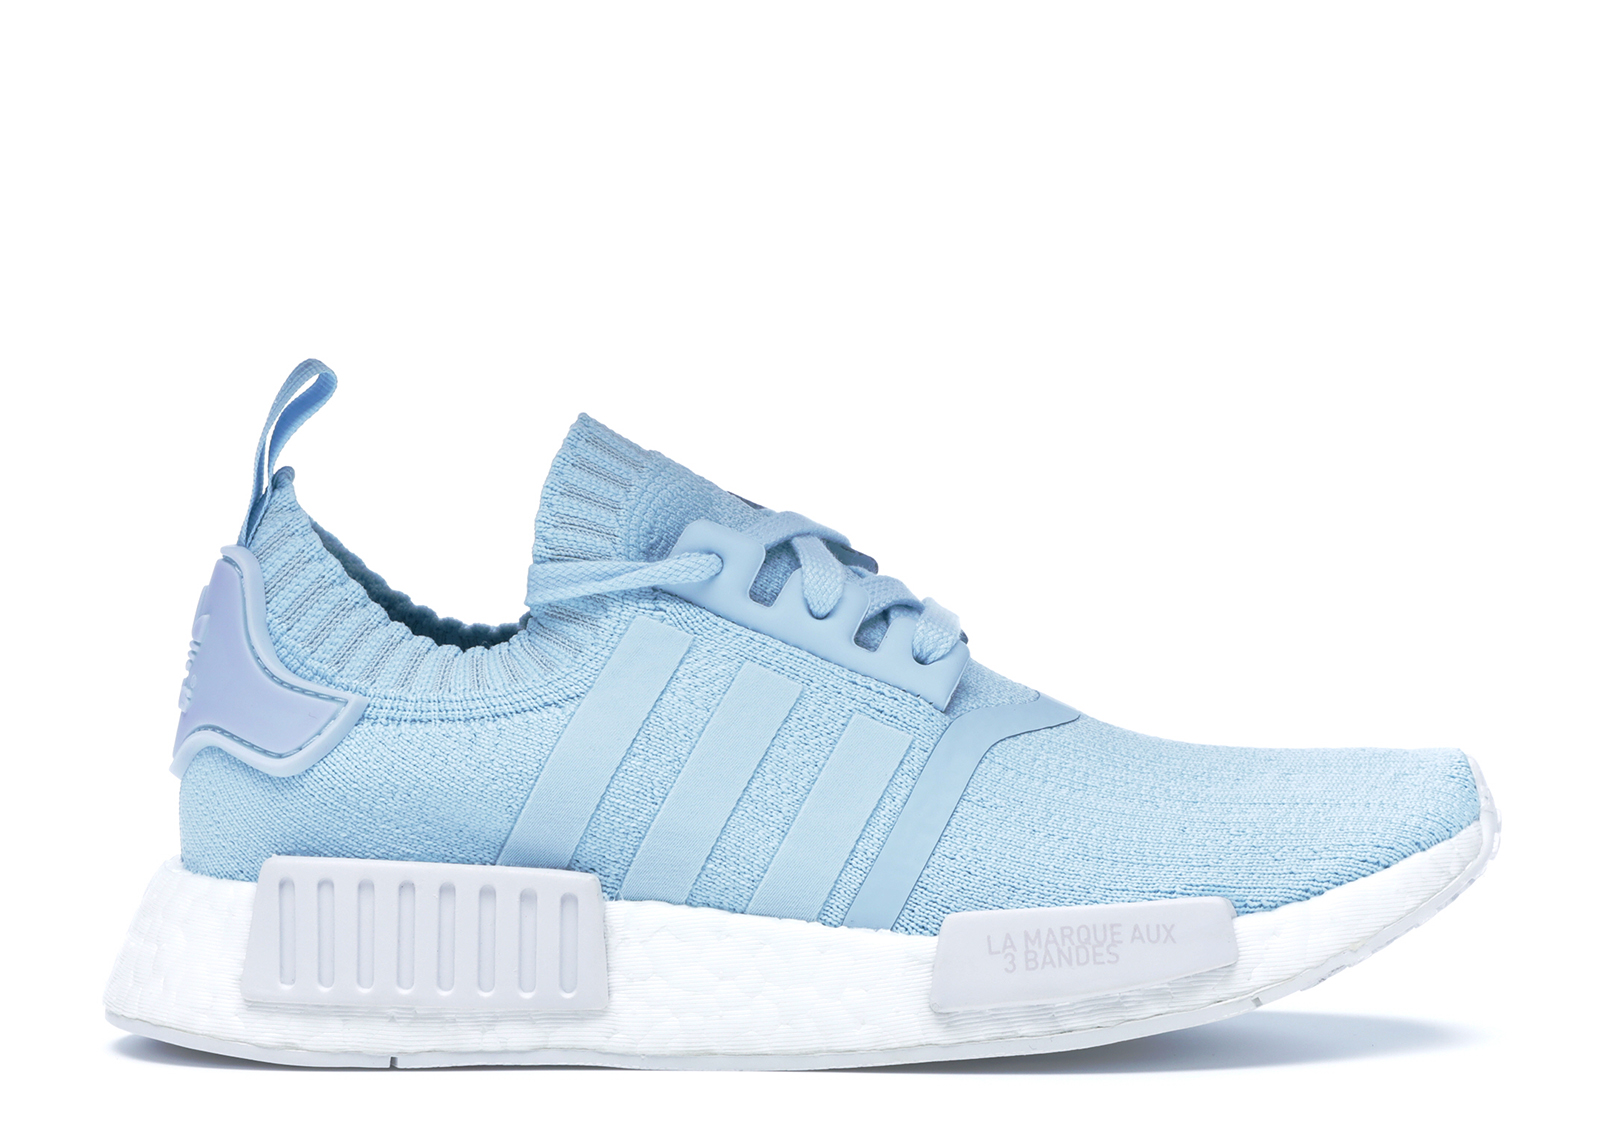 adidas NMD R1 Icey Blue White (W) - BY8763